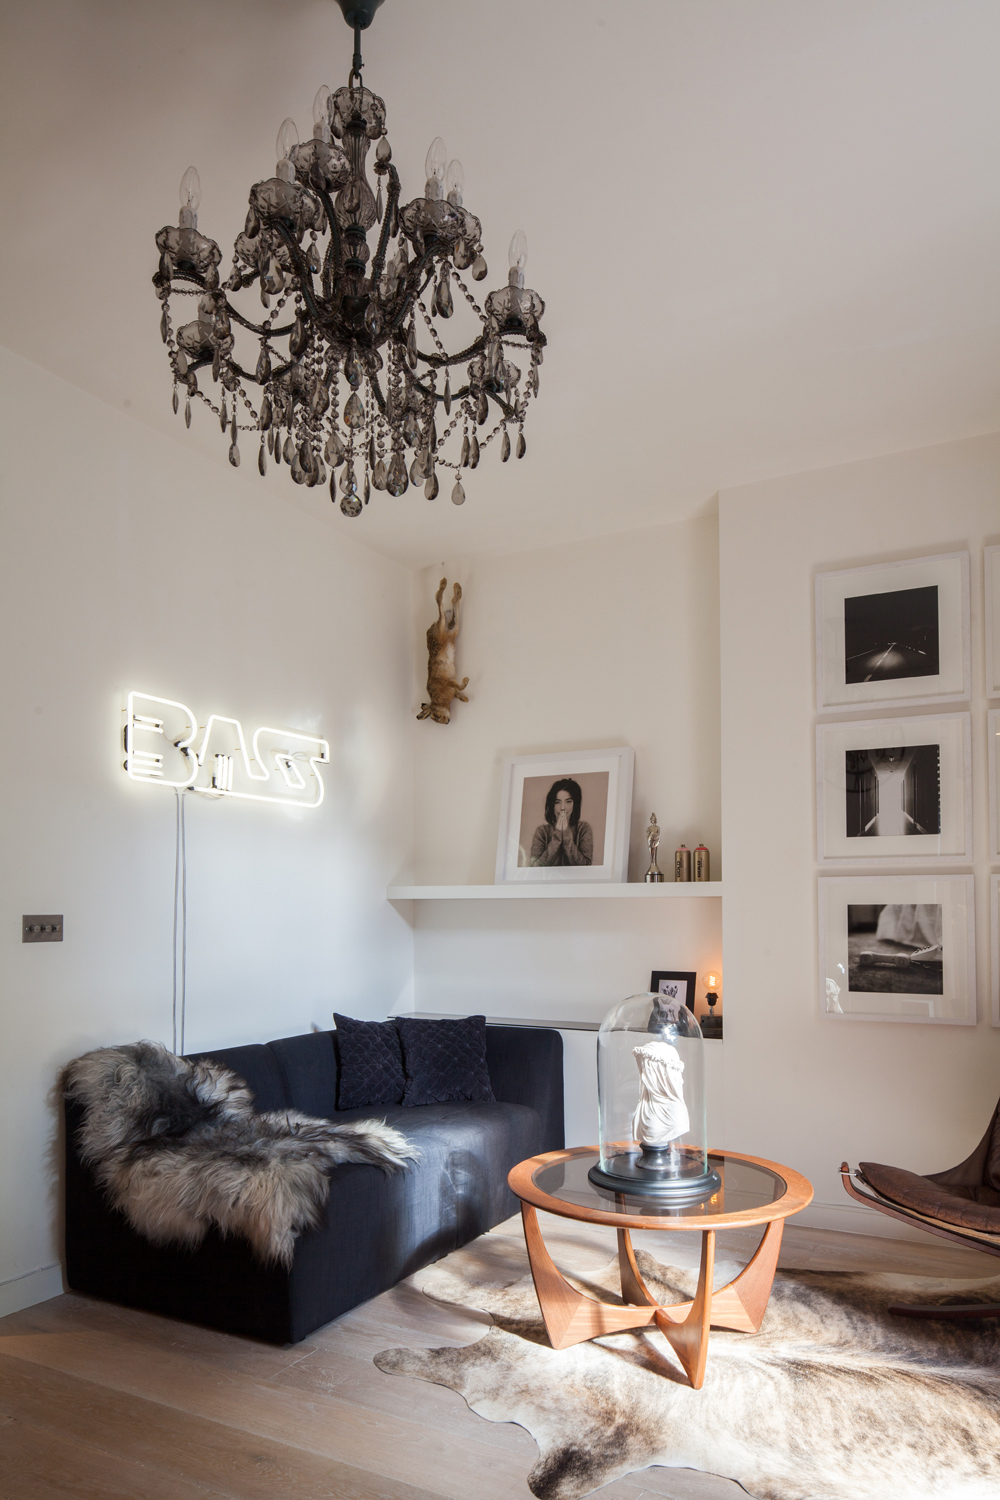 Restoration hardware chandeliers at home and interior design ideas nice i love the bead chandeliers u and found these reasonably priced arubaitofo Images